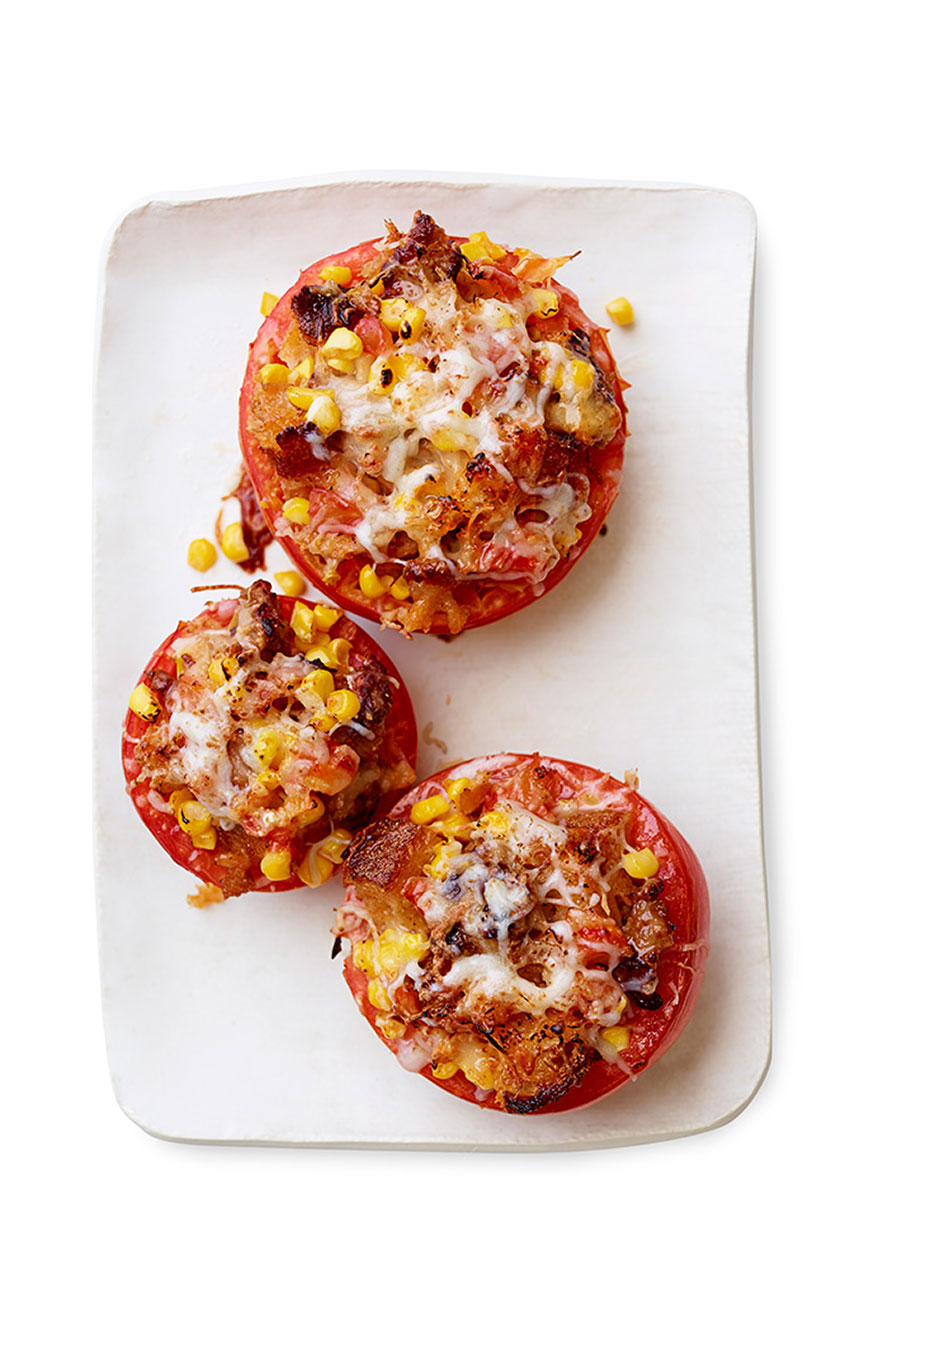 201309-omag-stuffed-tomatoes-949x1356